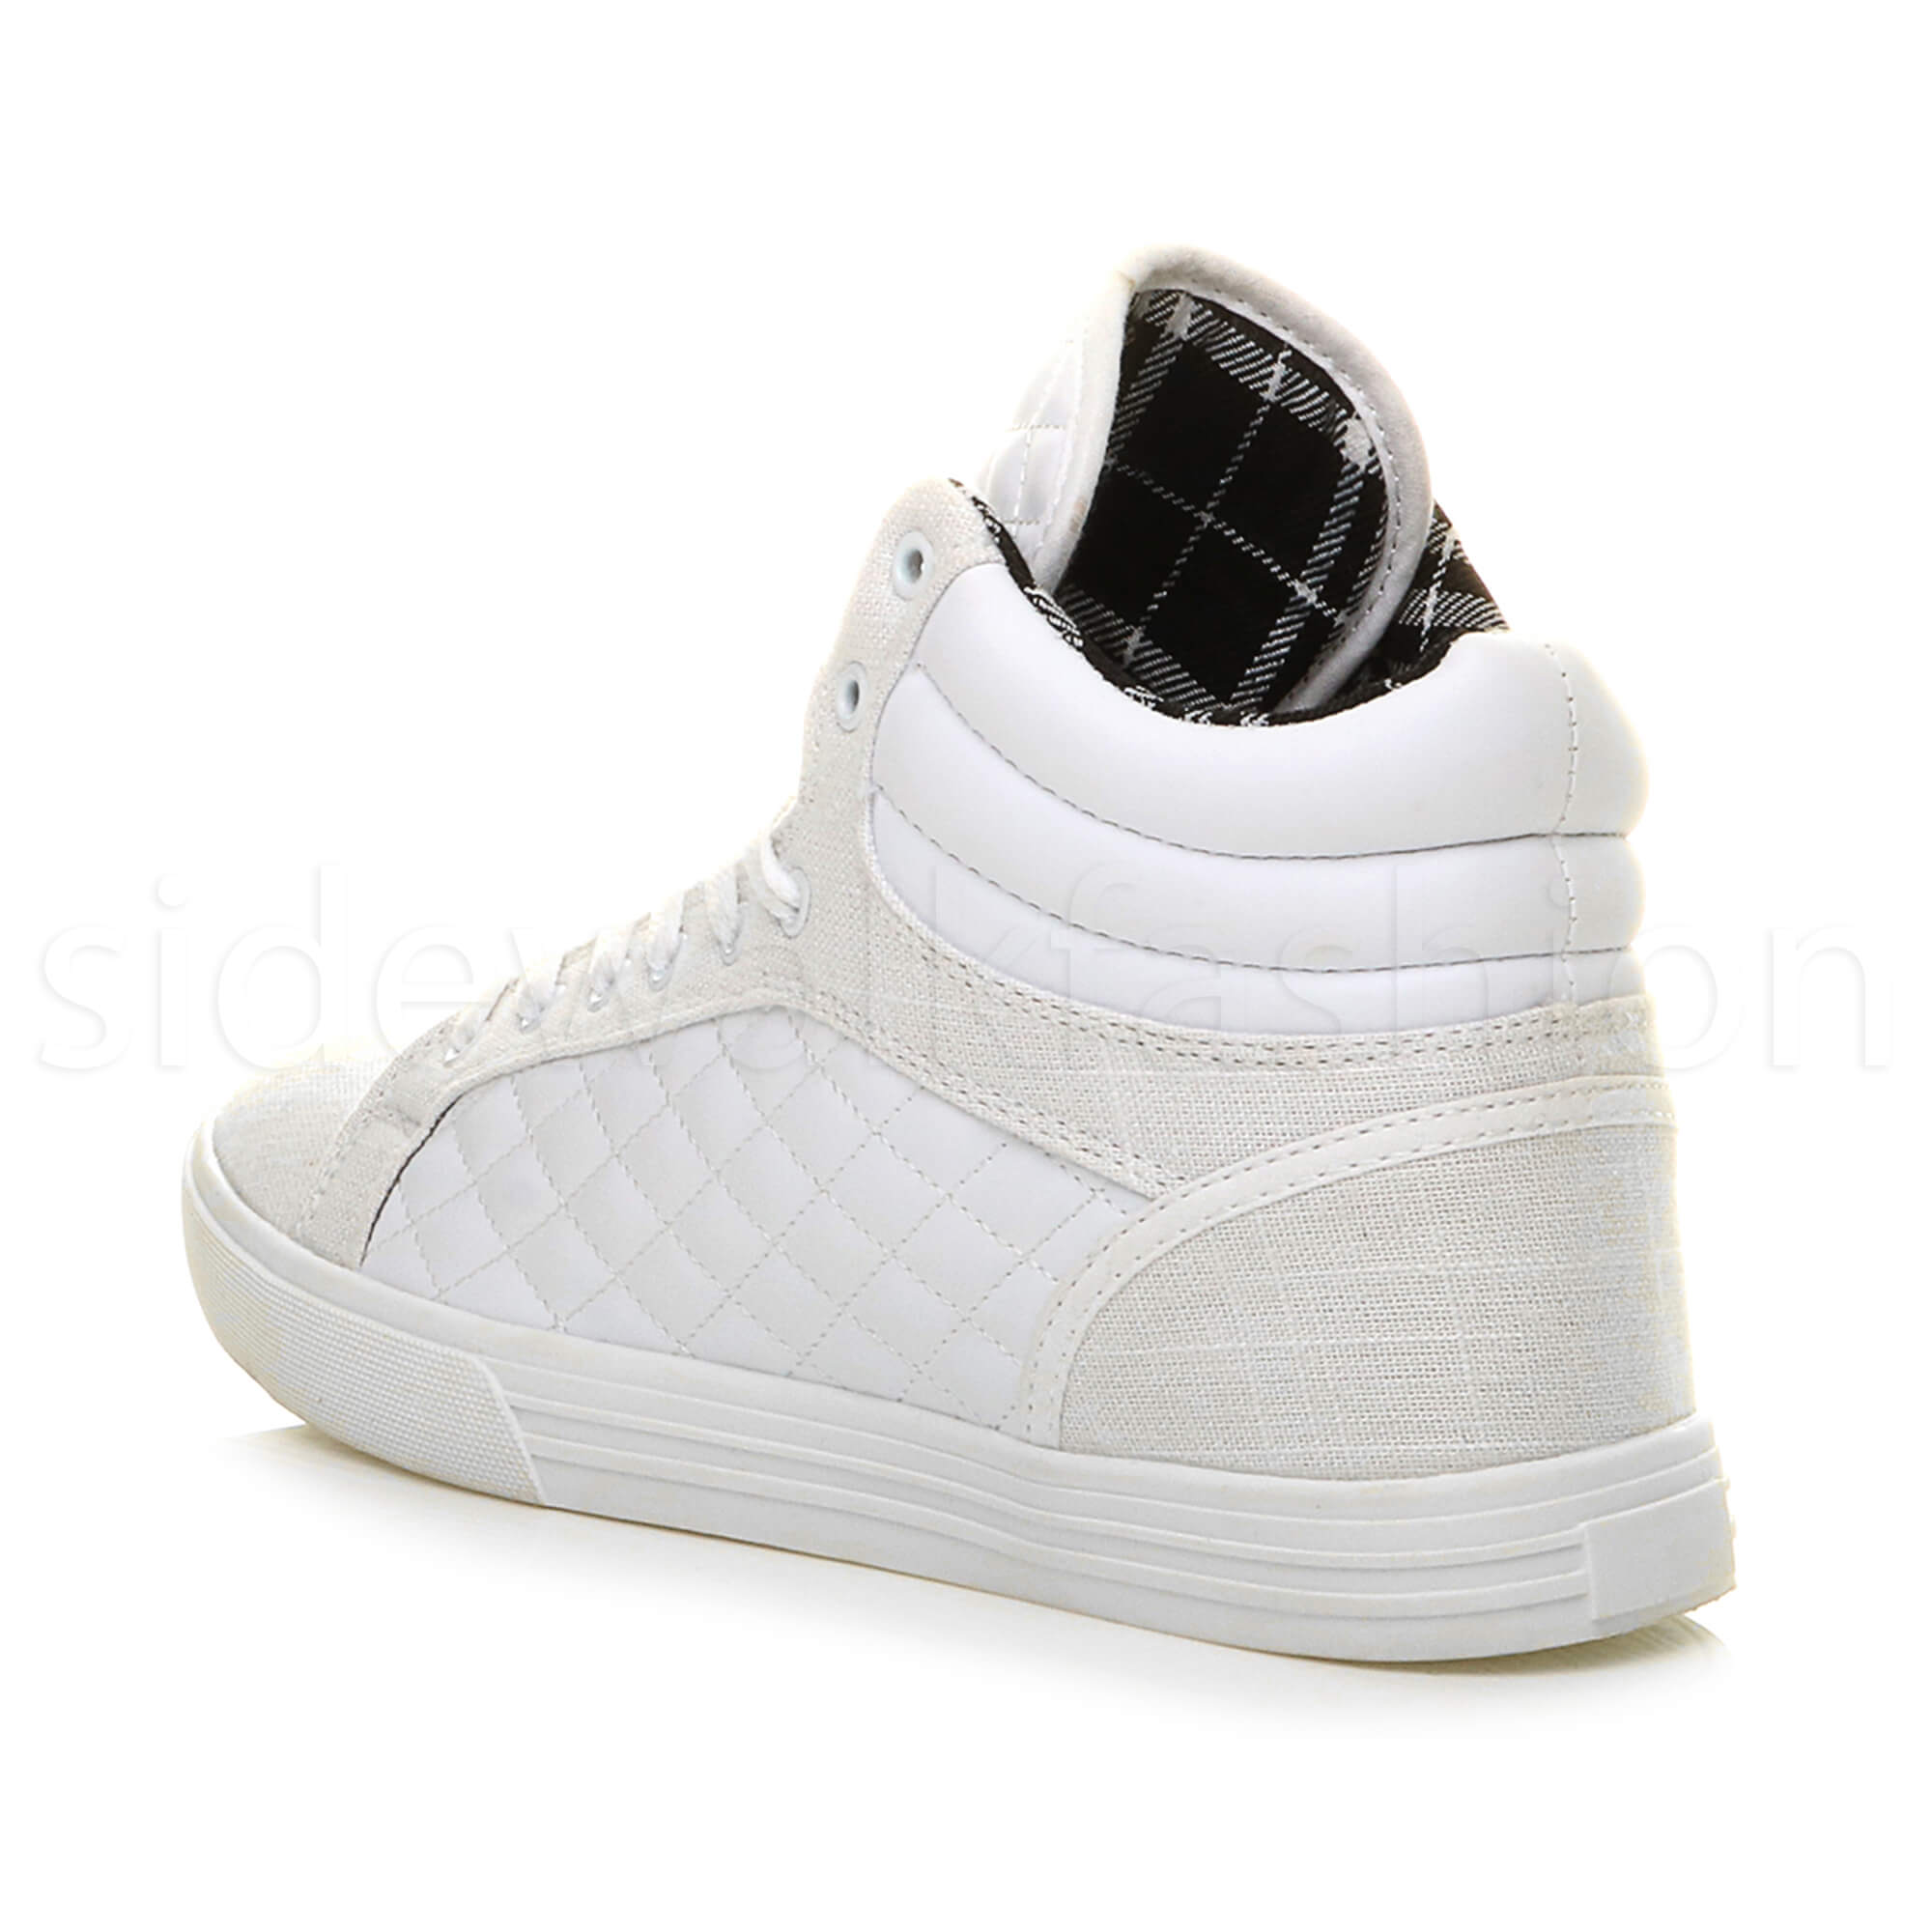 Mens-flat-lace-up-quilted-casual-hi-high-top-ankle-boots-trainers-sneakers-size thumbnail 33